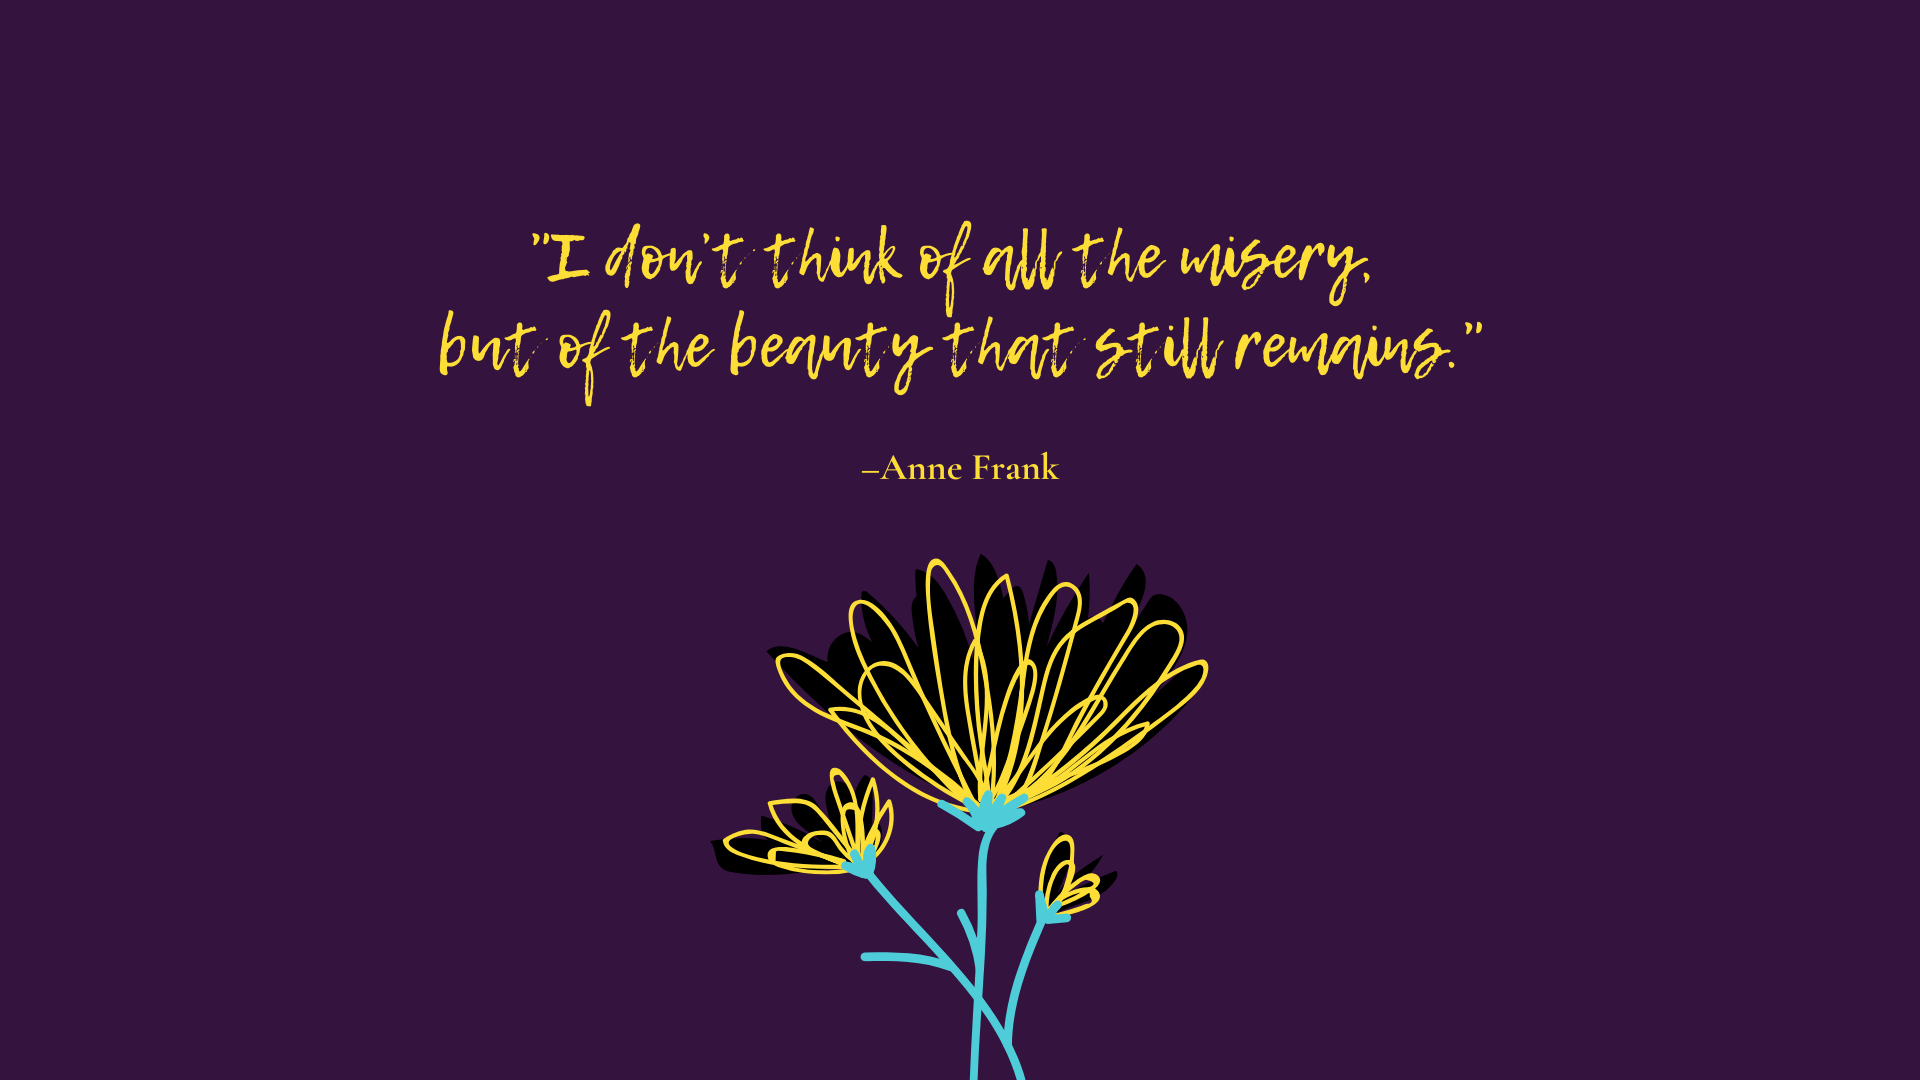 Anne Frank - beauty that still remains